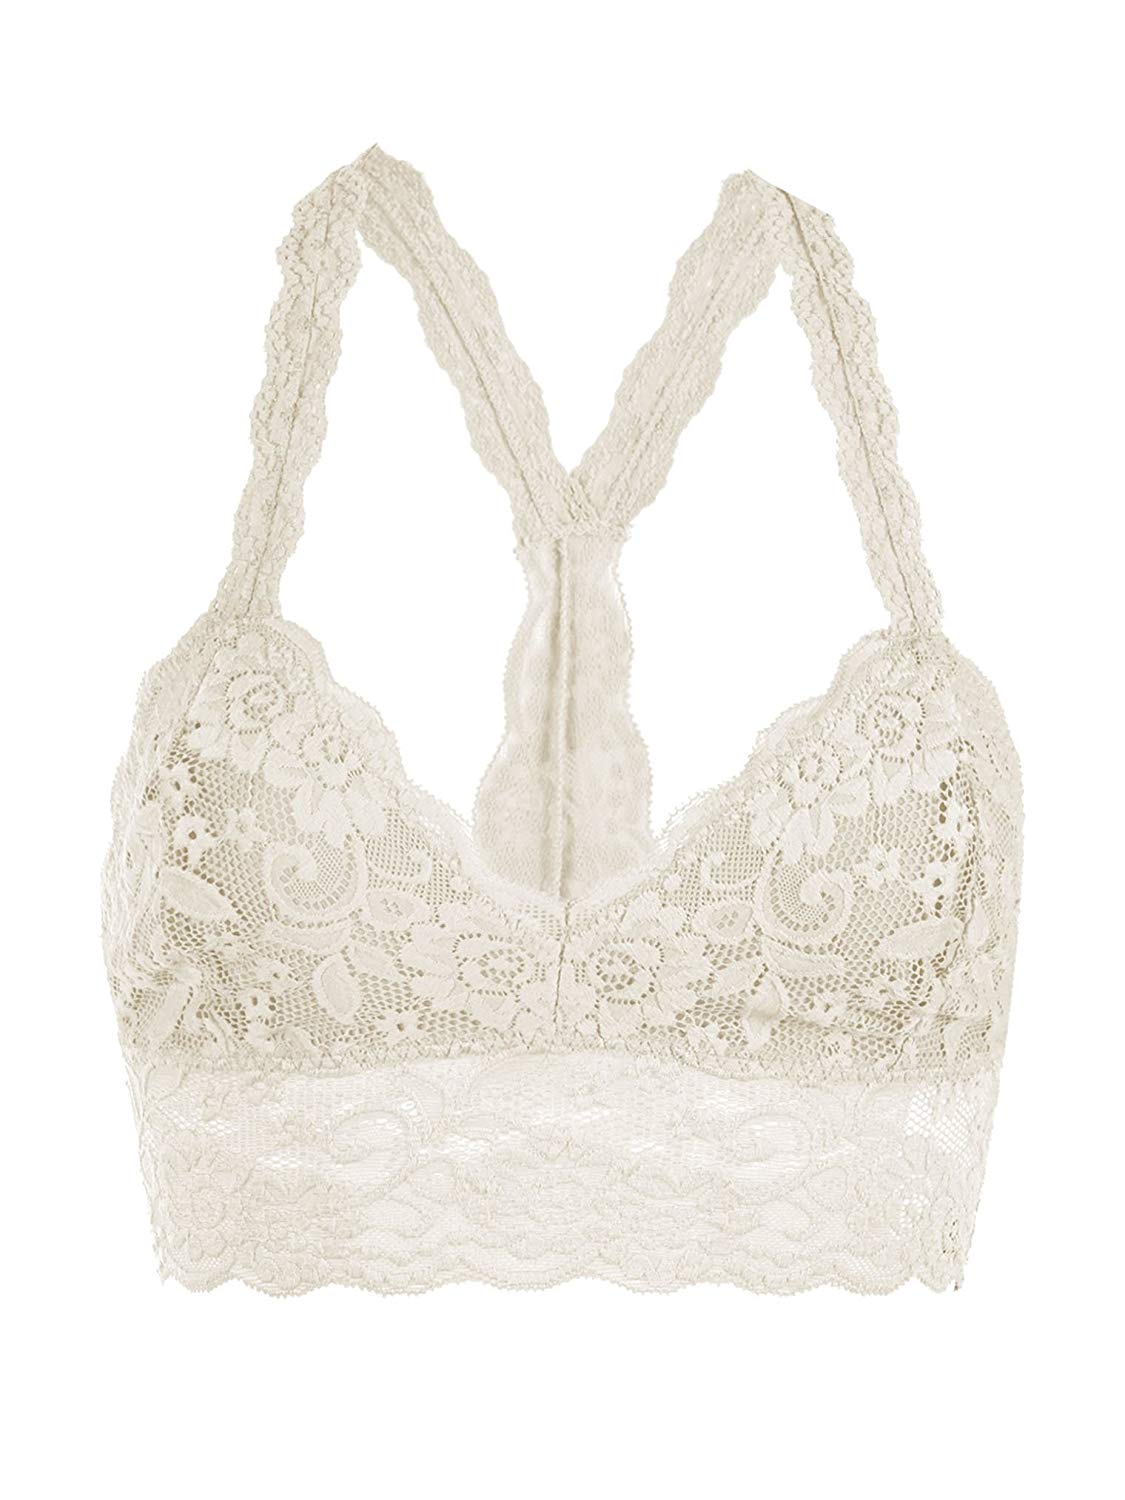 2b4b750a8c057 Get Quotations · Floral Lace Racerback Unpadded Bralette Top Sheer Bustier  Crop Wireless Lingerie Bra (Medium